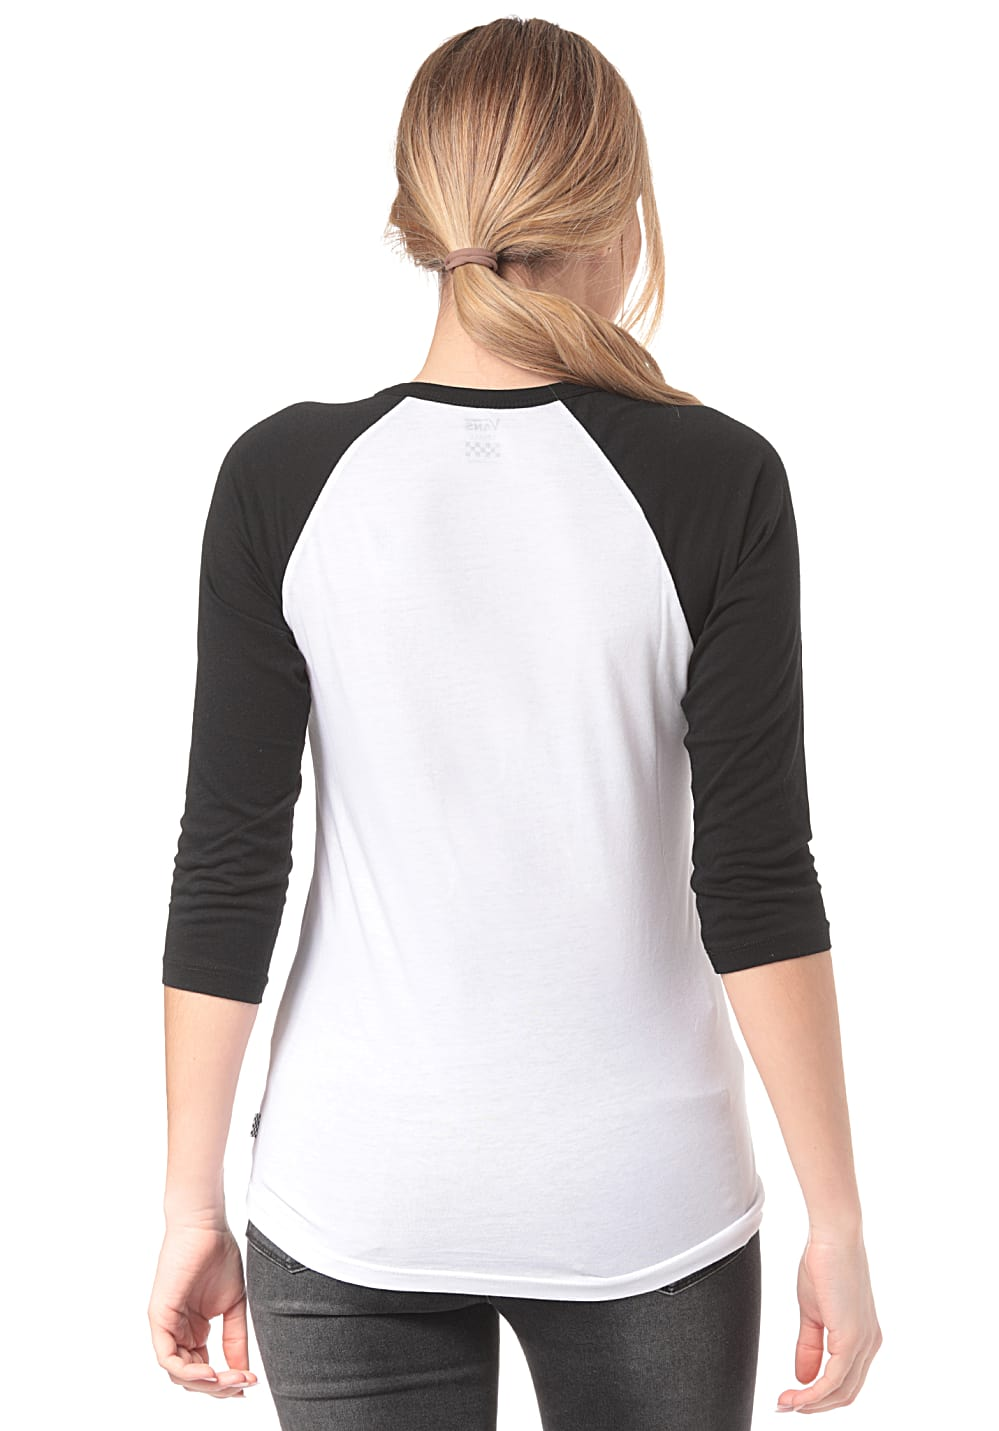 373f94f2d Next. This product is currently out of stock. Vans. Flying V - Long-sleeved  Shirt for Women